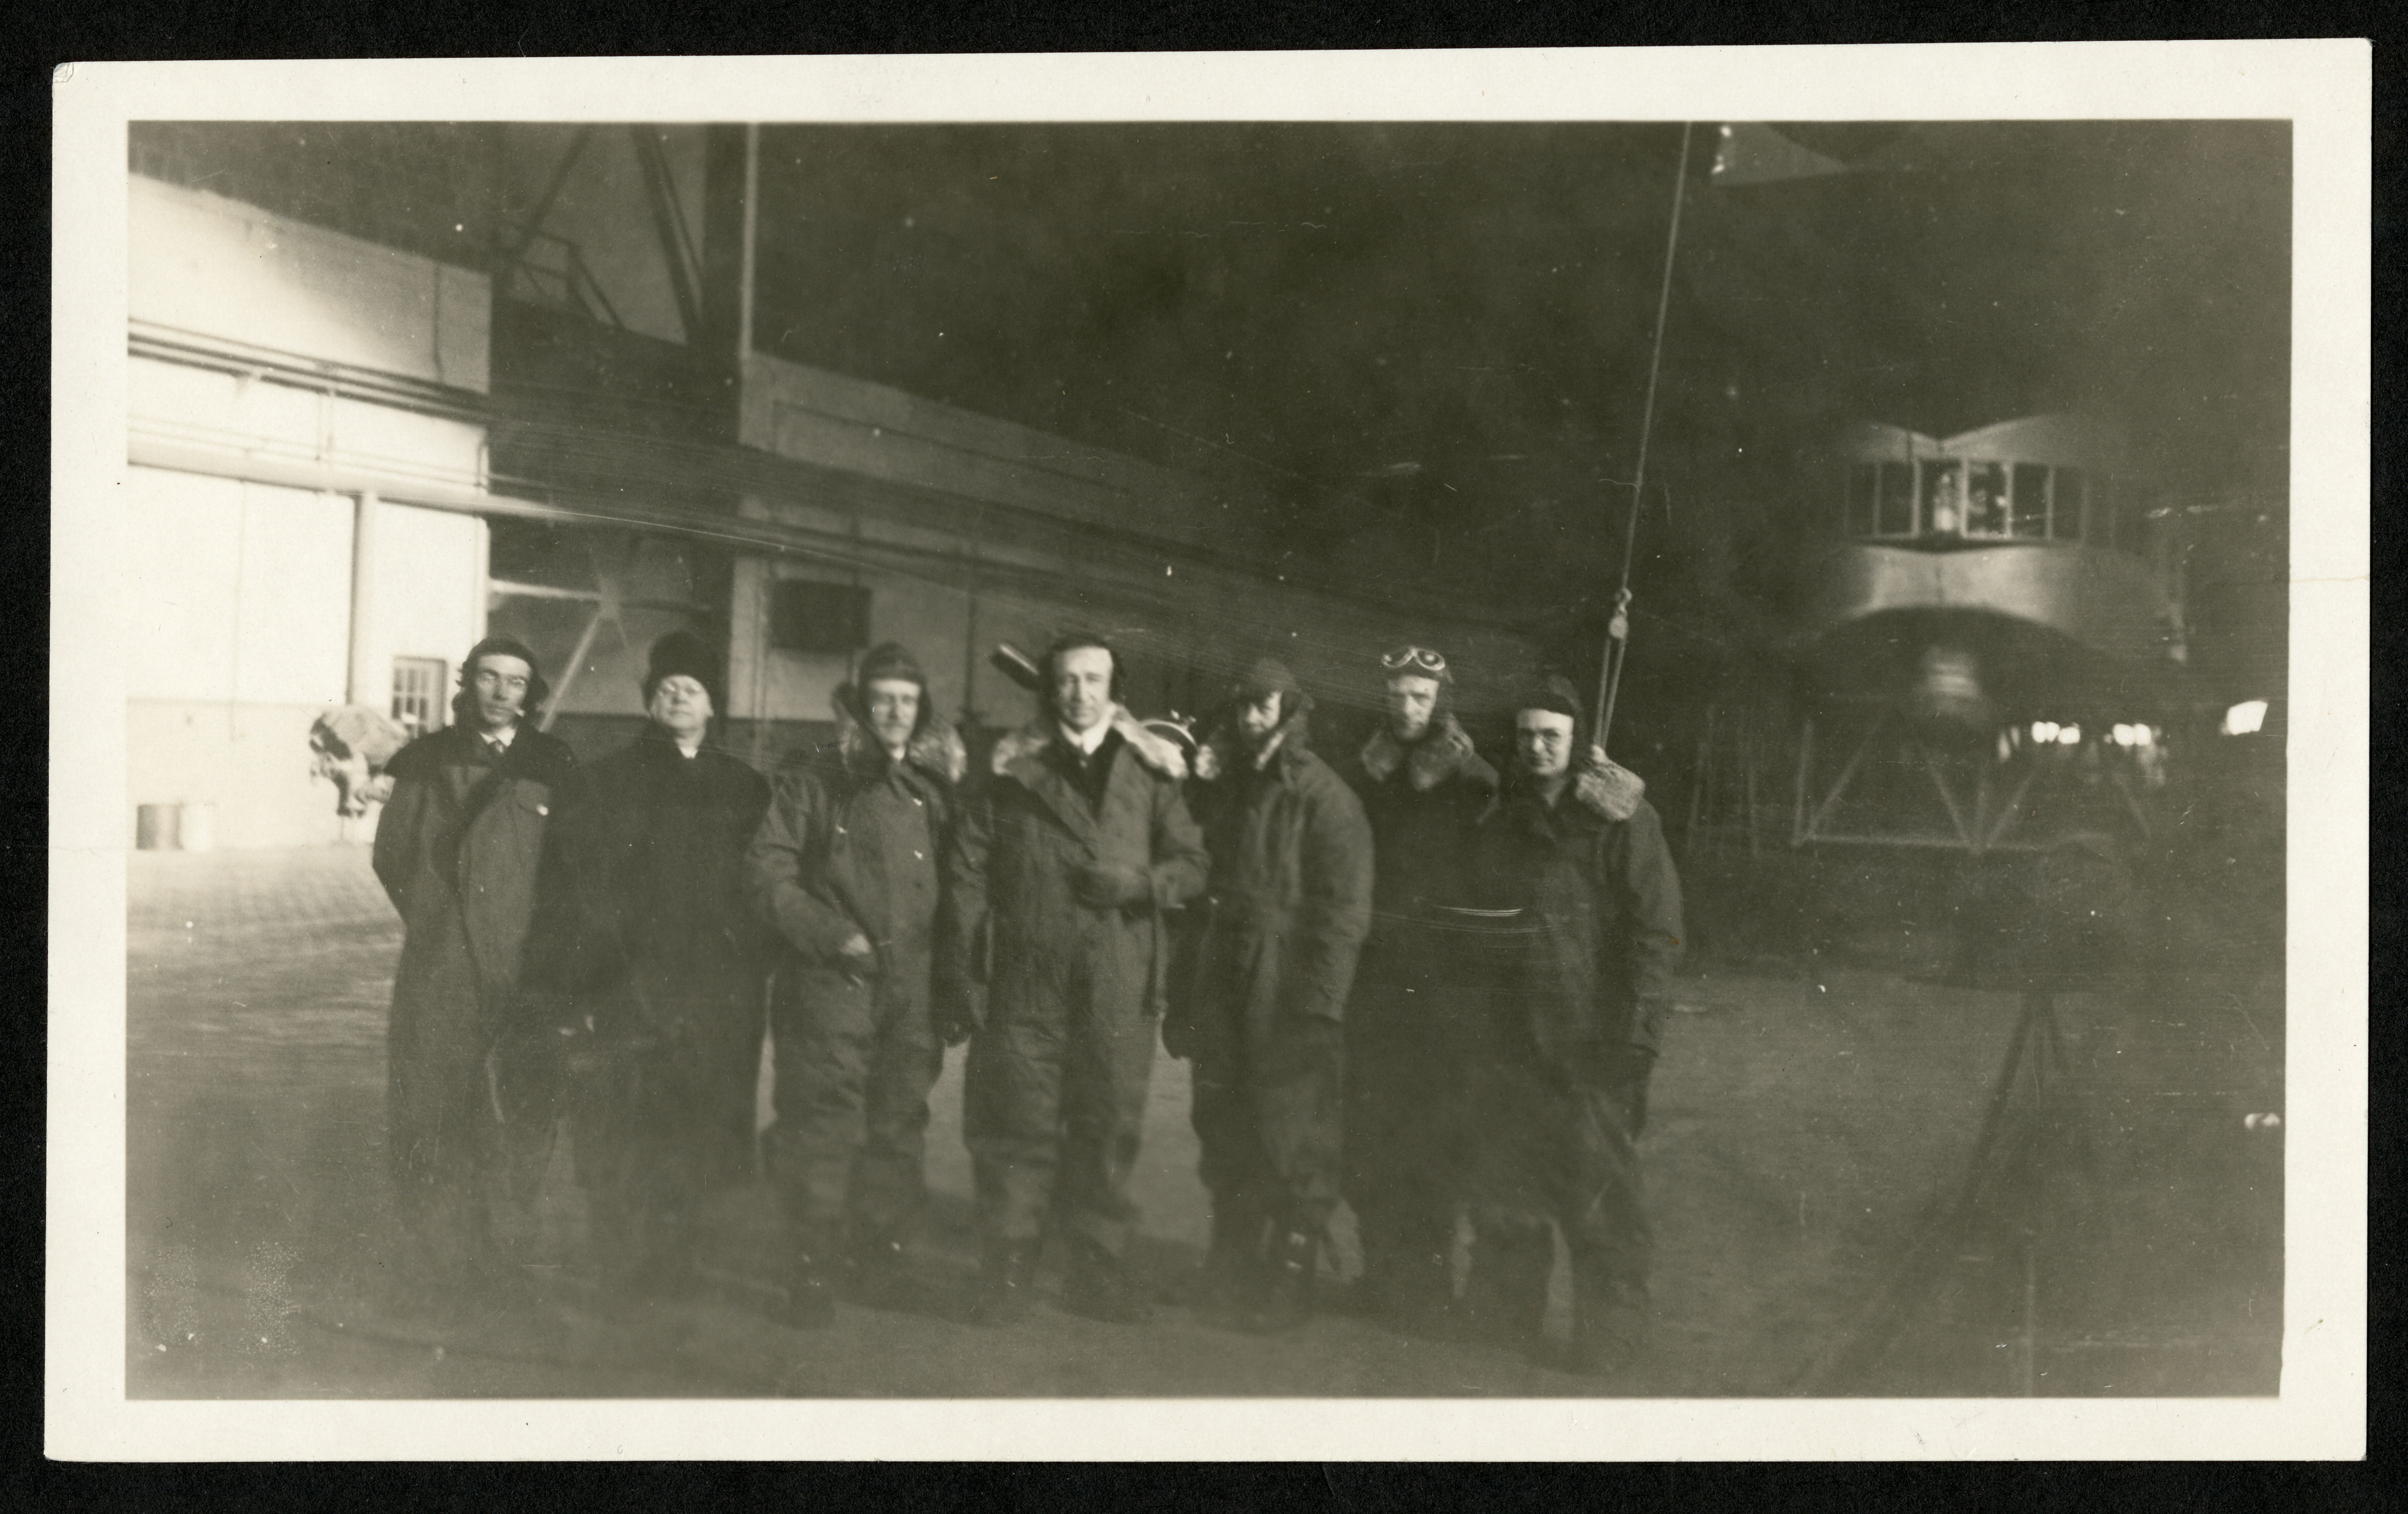 Crew and scientists for the solar eclipse expedition onboard the dirigible U.S.S. Los Angeles.